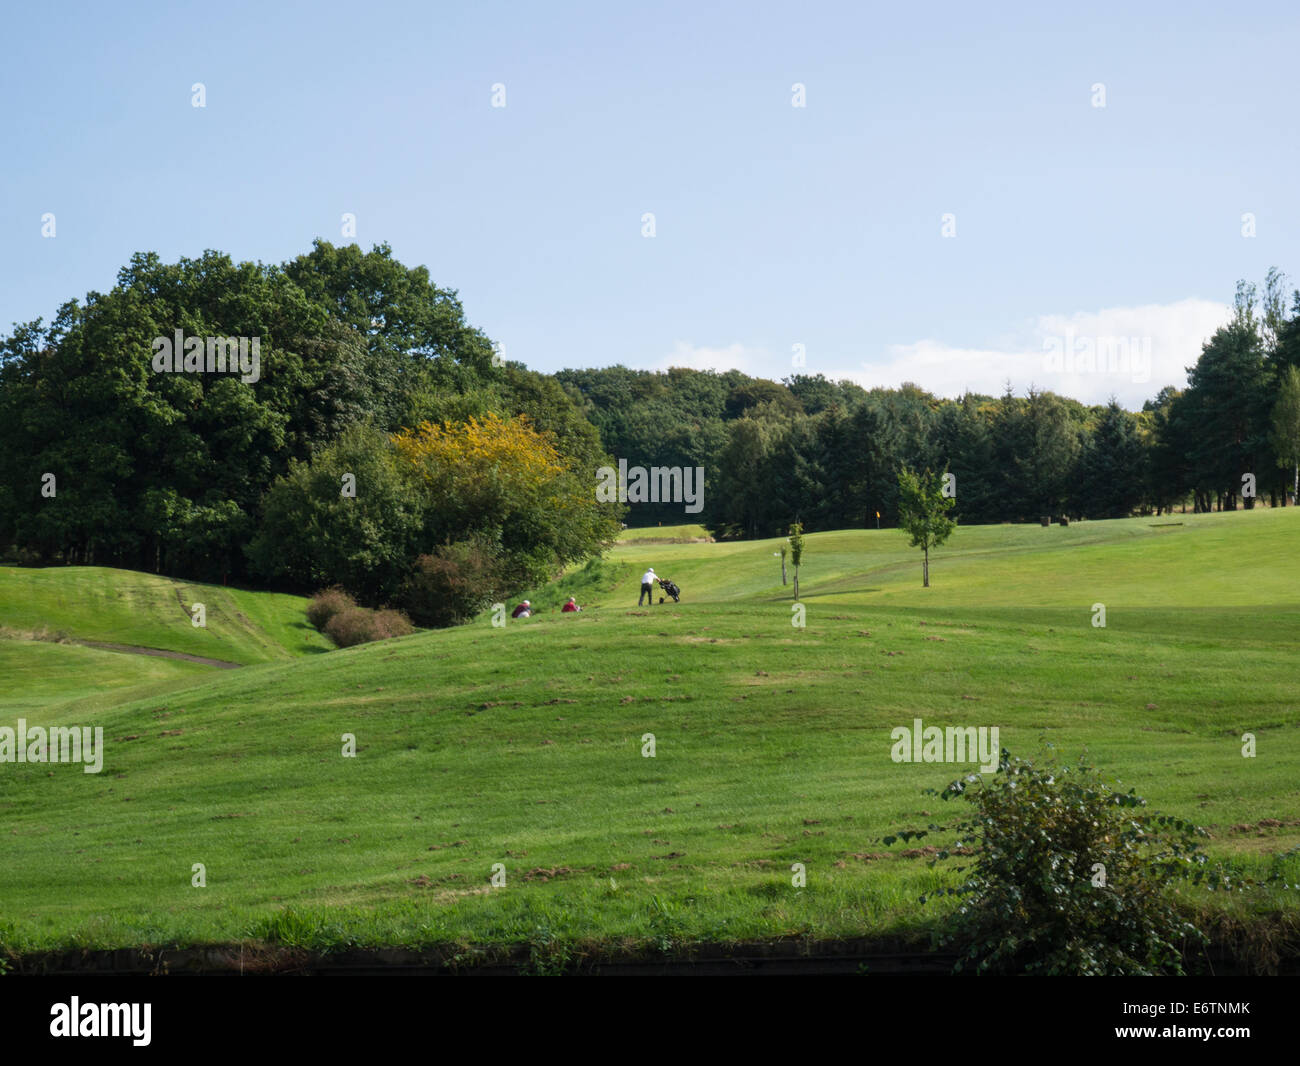 Golfers on the popular golf course Haigh Hall Country Park Wigan Greater Manchester - Stock Image